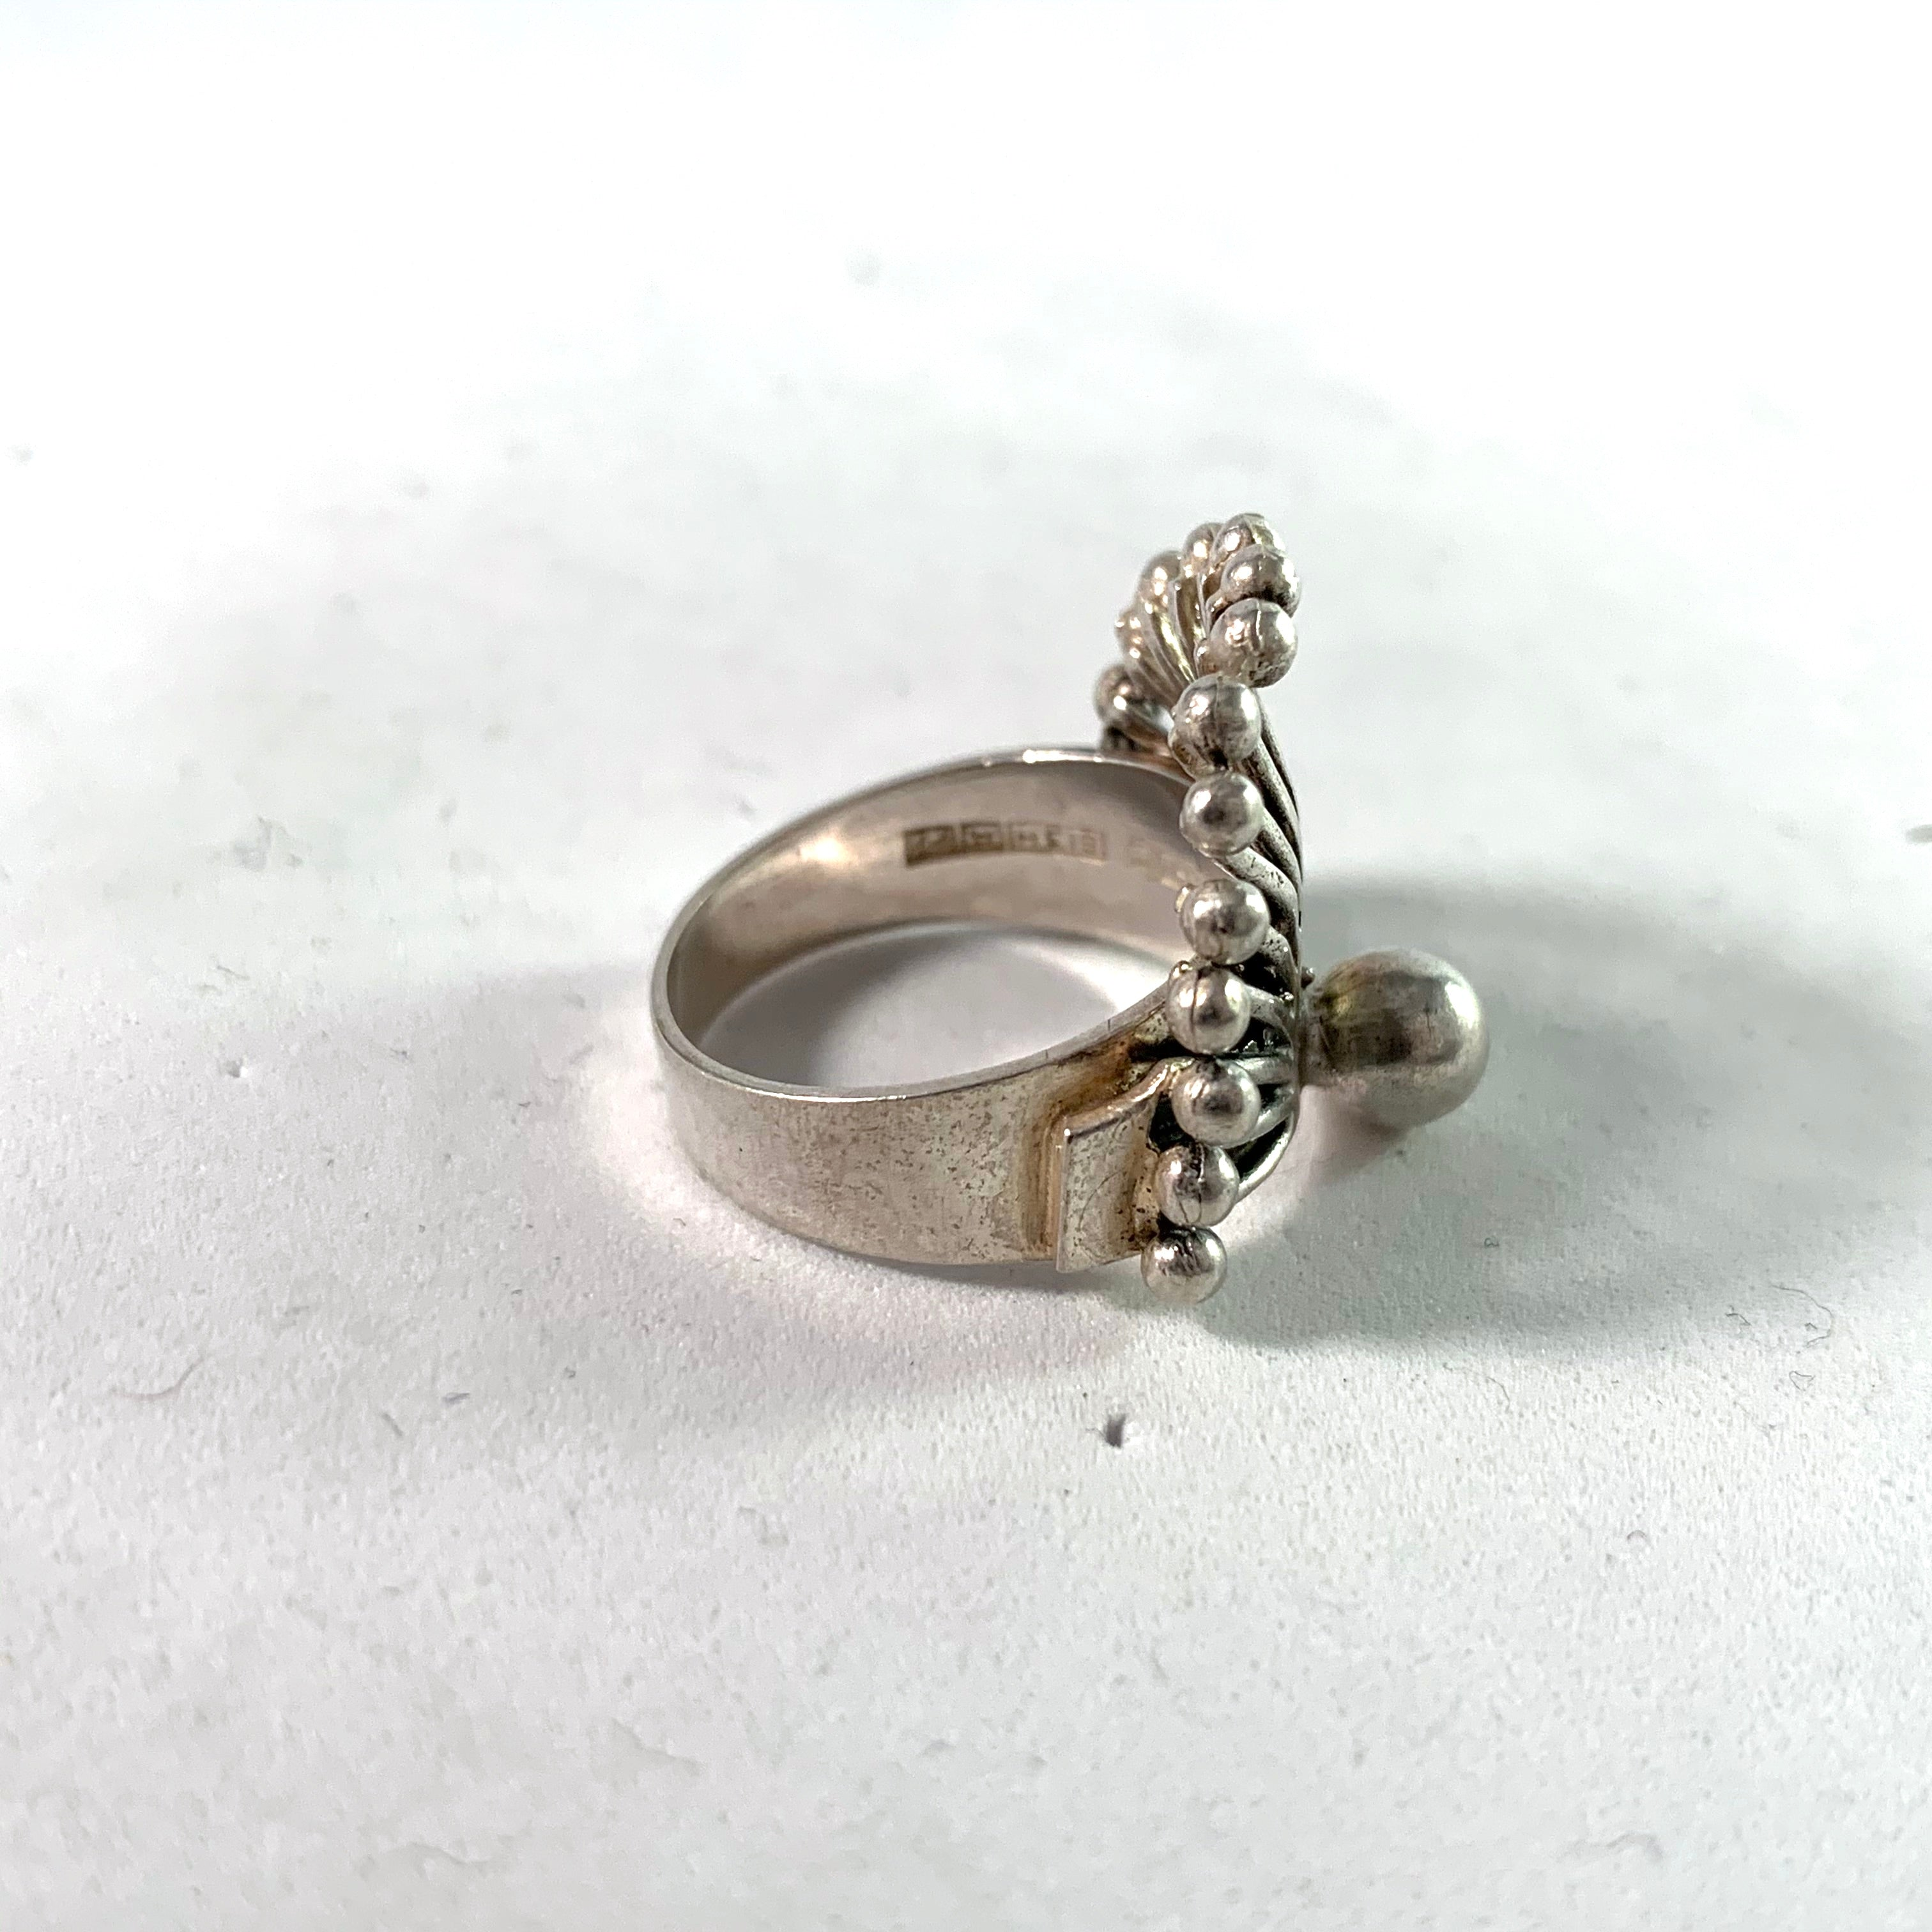 Turun Hopea, Finland 1968 Modernist Silver Ring.